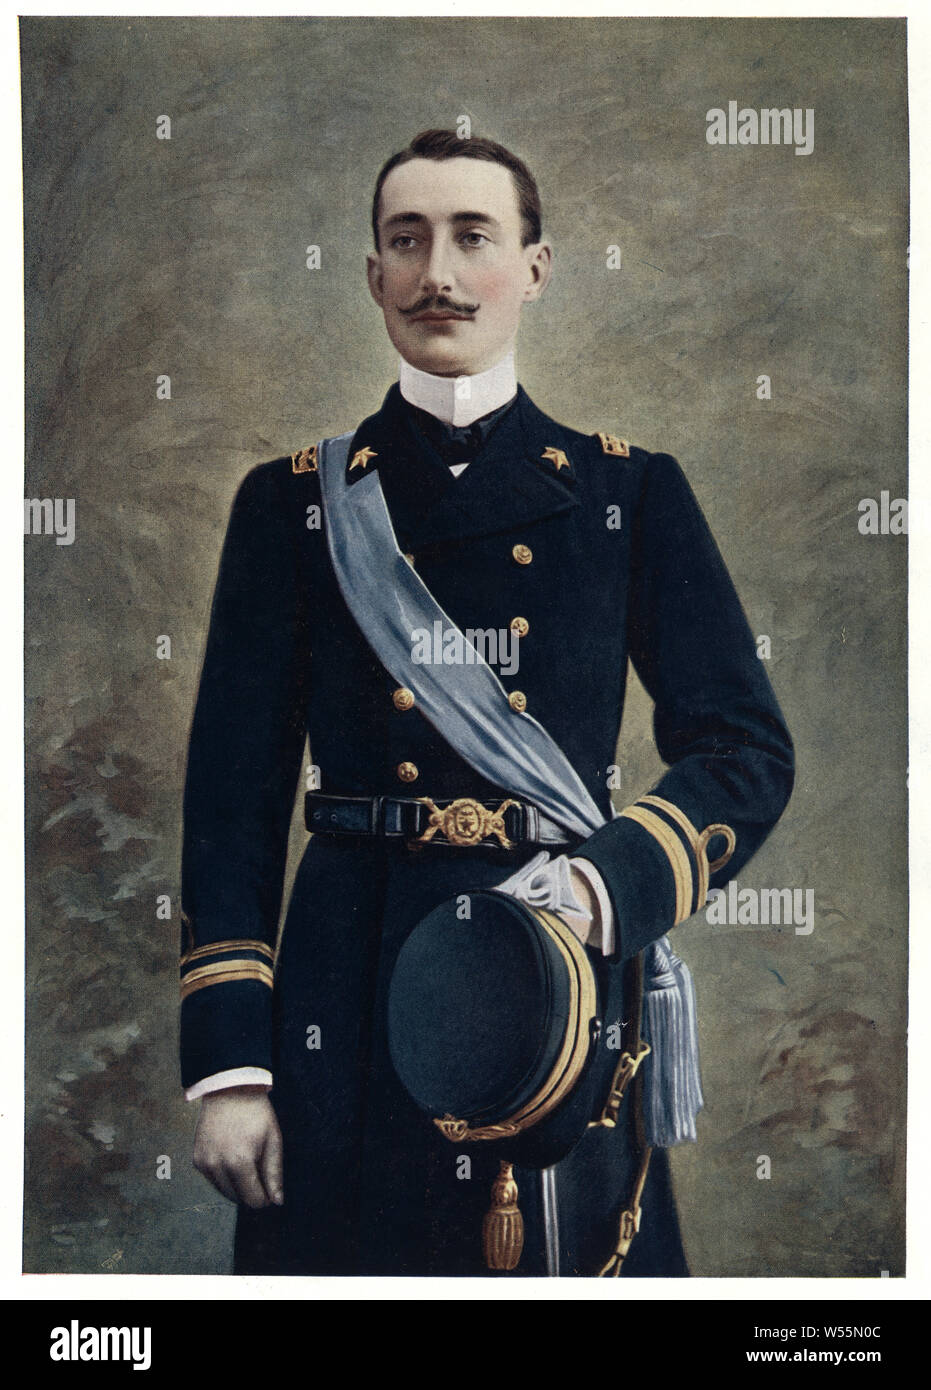 Prince Luigi Amedeo, Duke of the Abruzzi (29 January 1873 – 18 March 1933) was an Italian mountaineer and explorer, briefly Infante of Spain as son of Amadeo I of Spain, member of the royal House of Savoy and cousin of the Italian King Victor Emmanuel III. Stock Photo